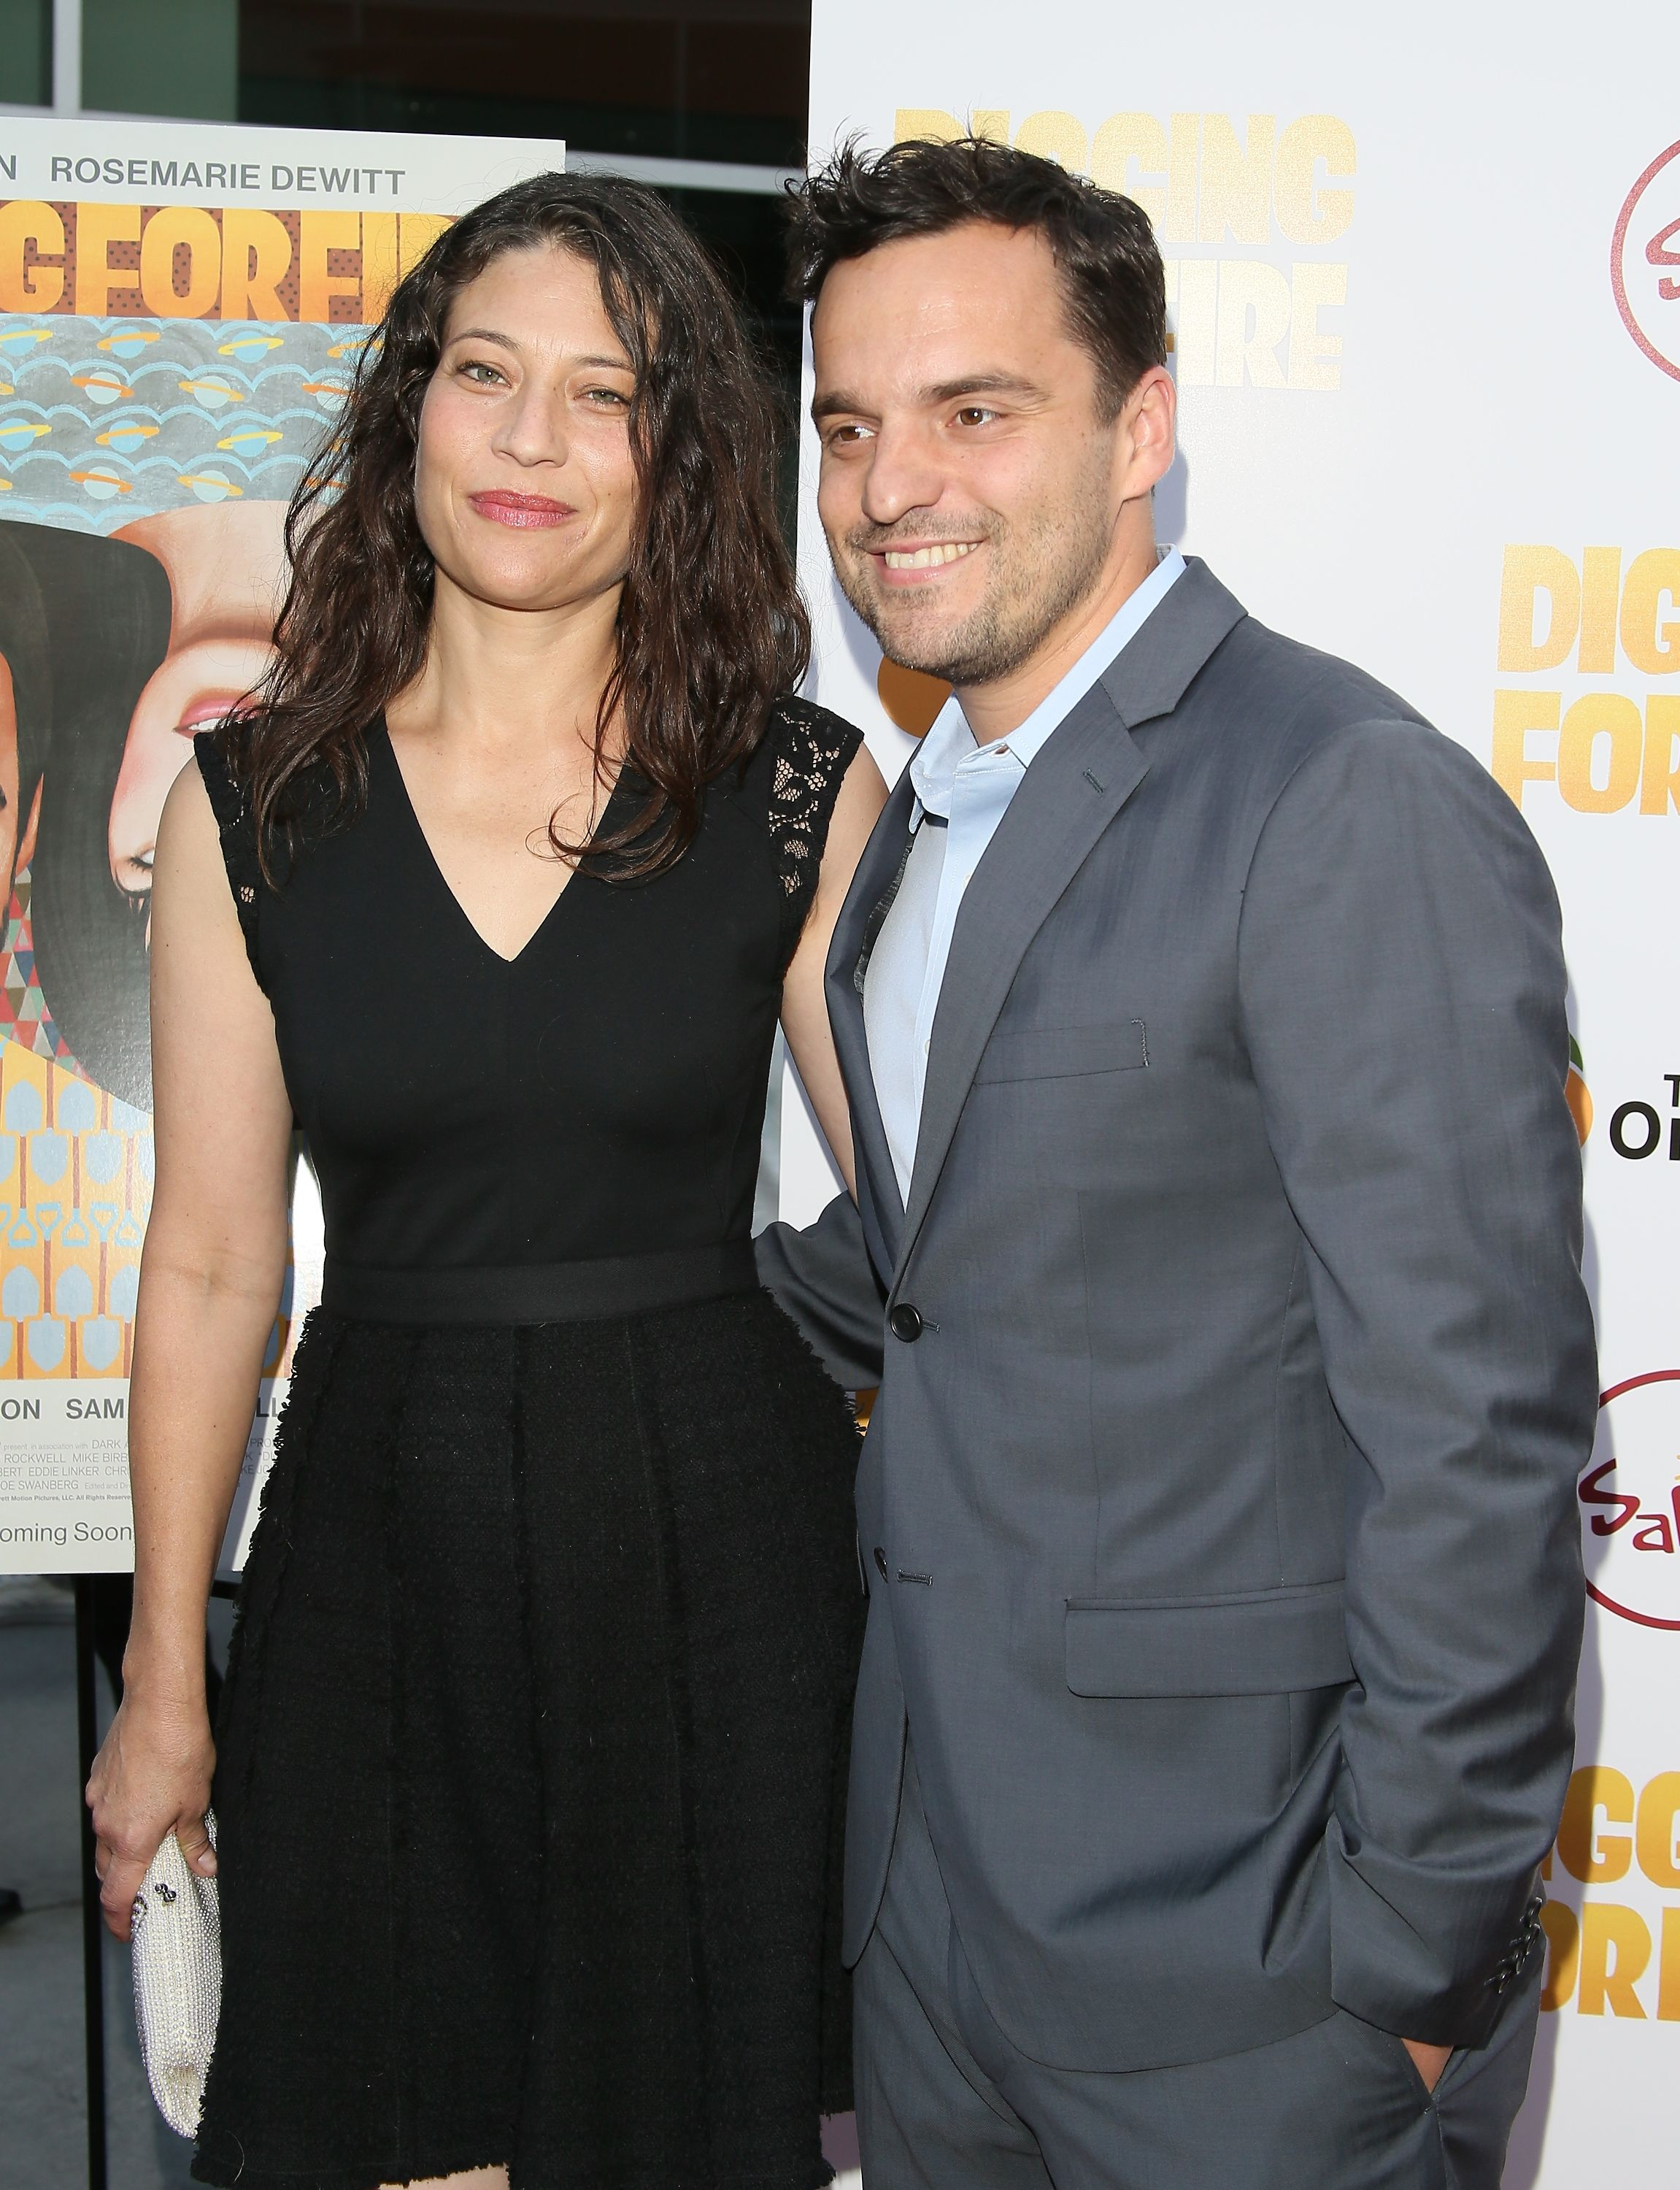 Jake Johnson prefers to keep his love life private / Getty Images